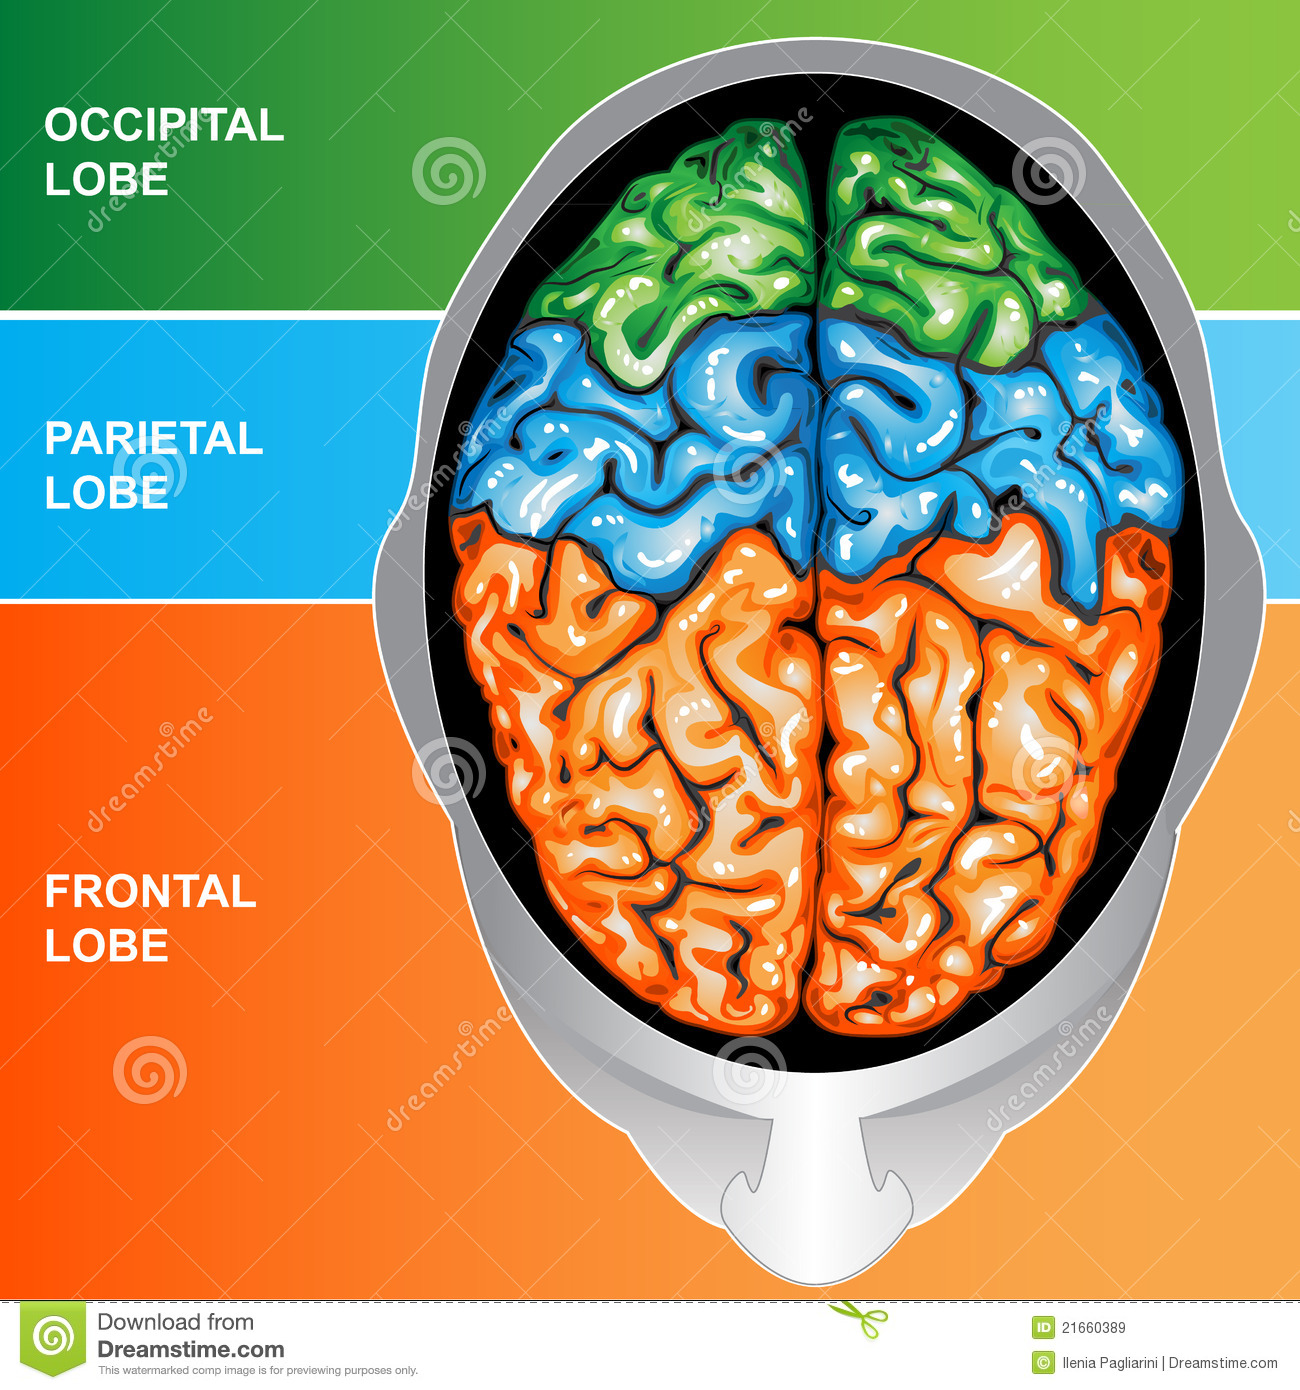 Human brain diagram top view human brain diagram top view photo4 ccuart Choice Image